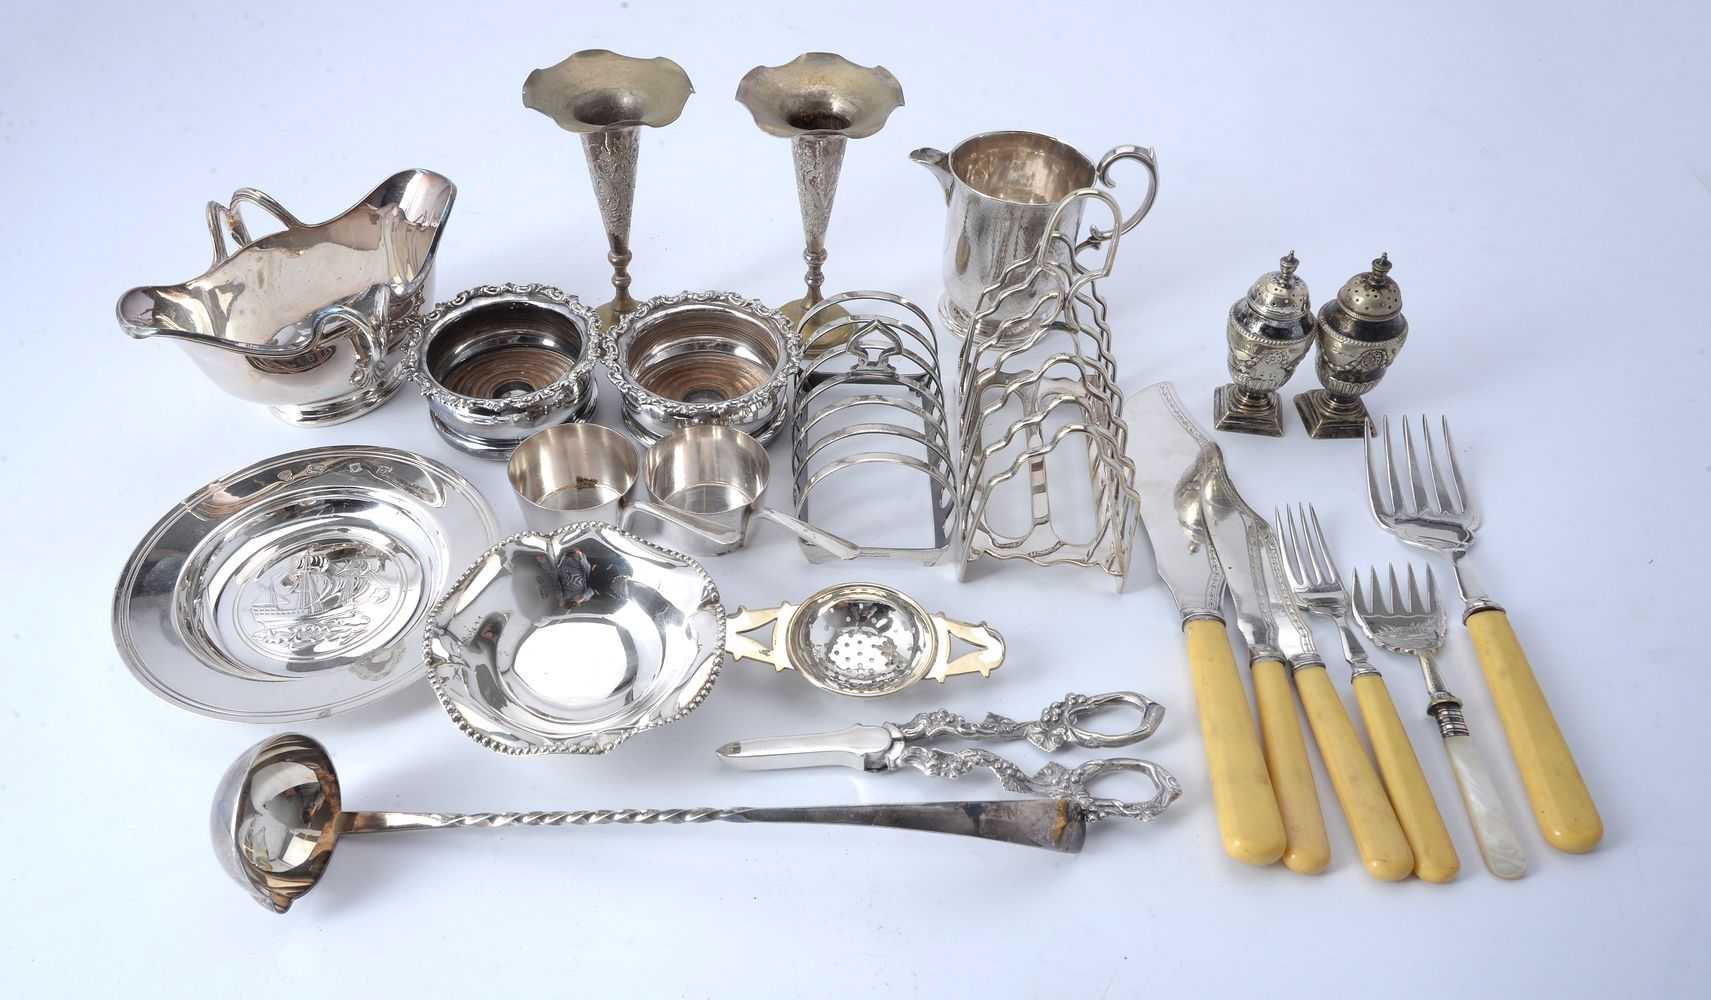 Four silver items and various plated wares